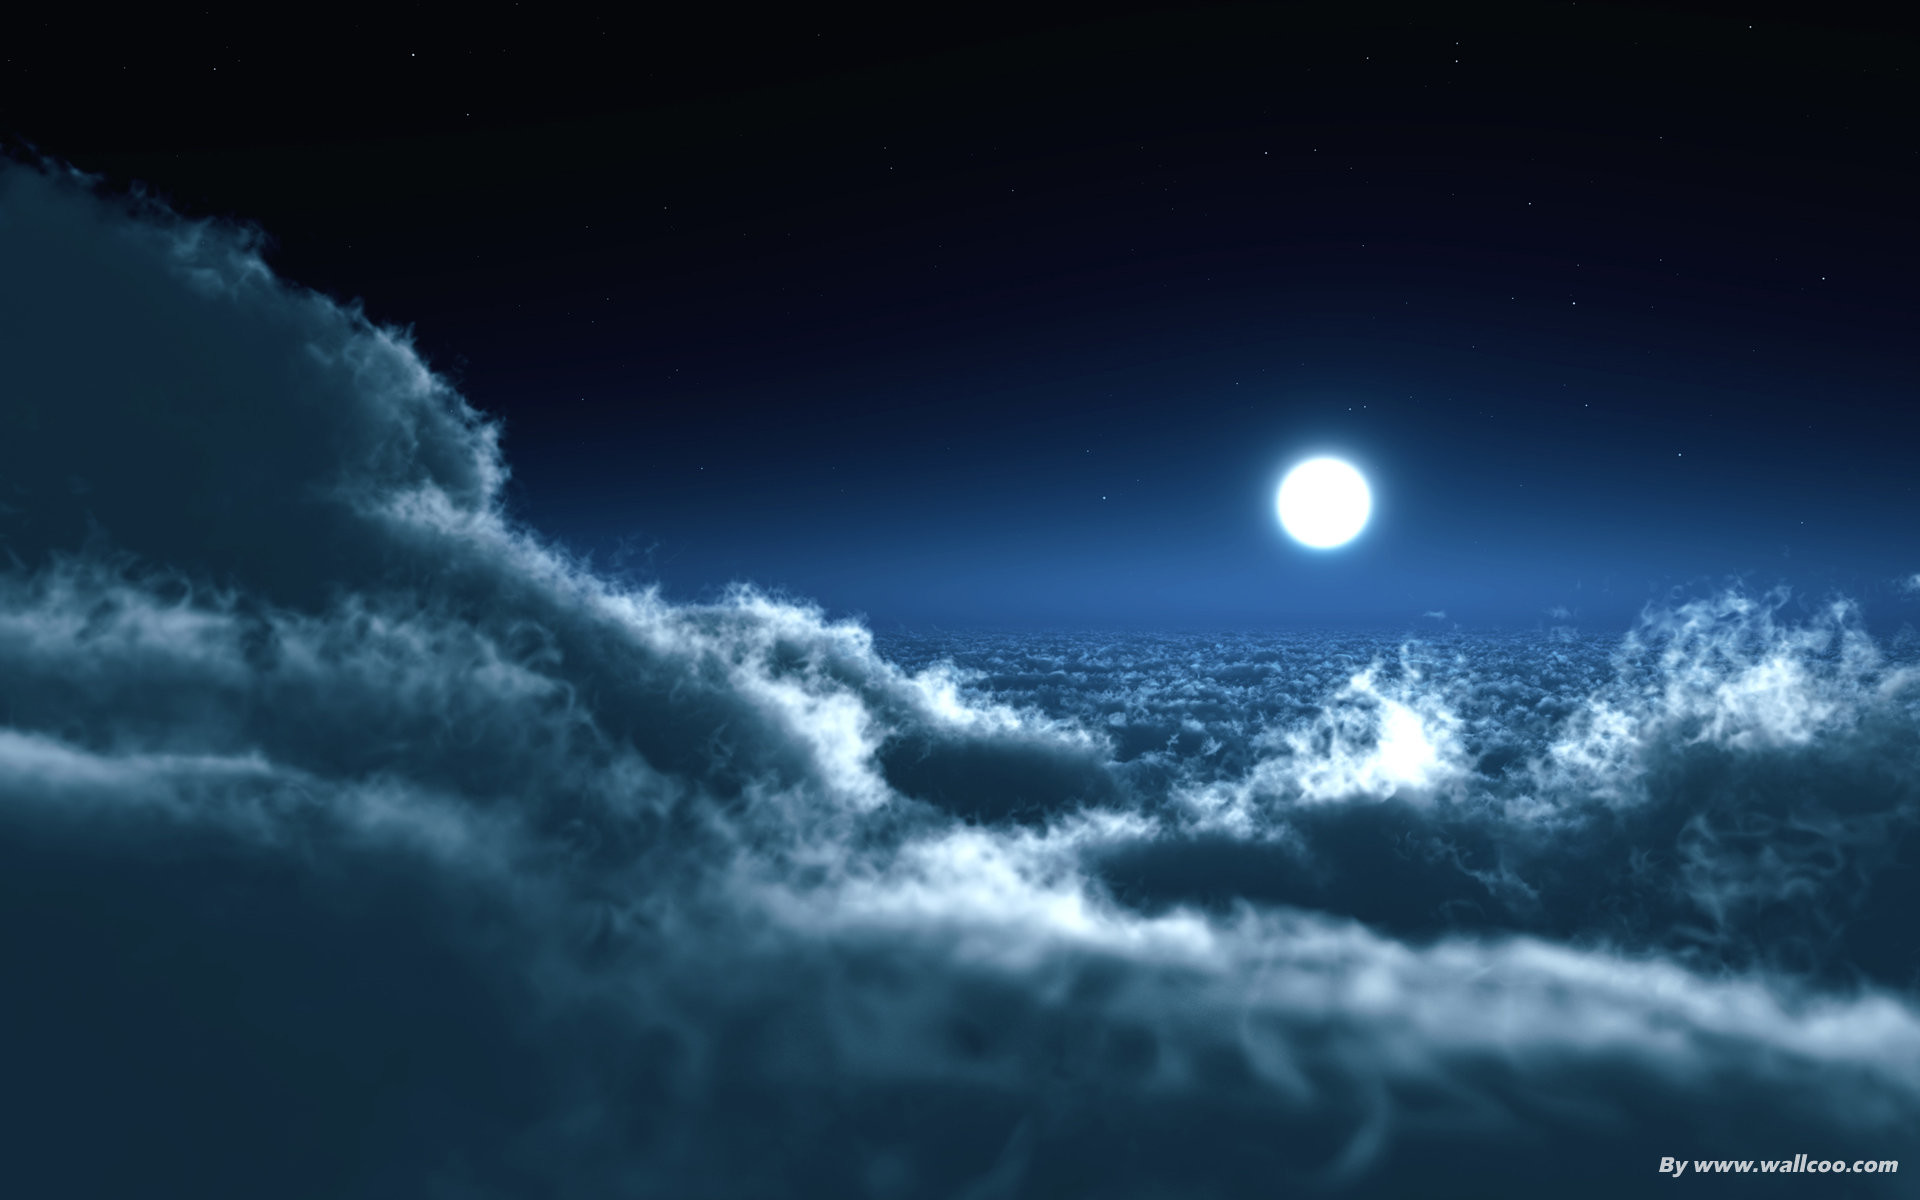 Animated Clouds Moon Night Nature High quality wallpapers in hd(high  definition),widescreen resolutions for desktop,mobiles and tabs absolutely  free.